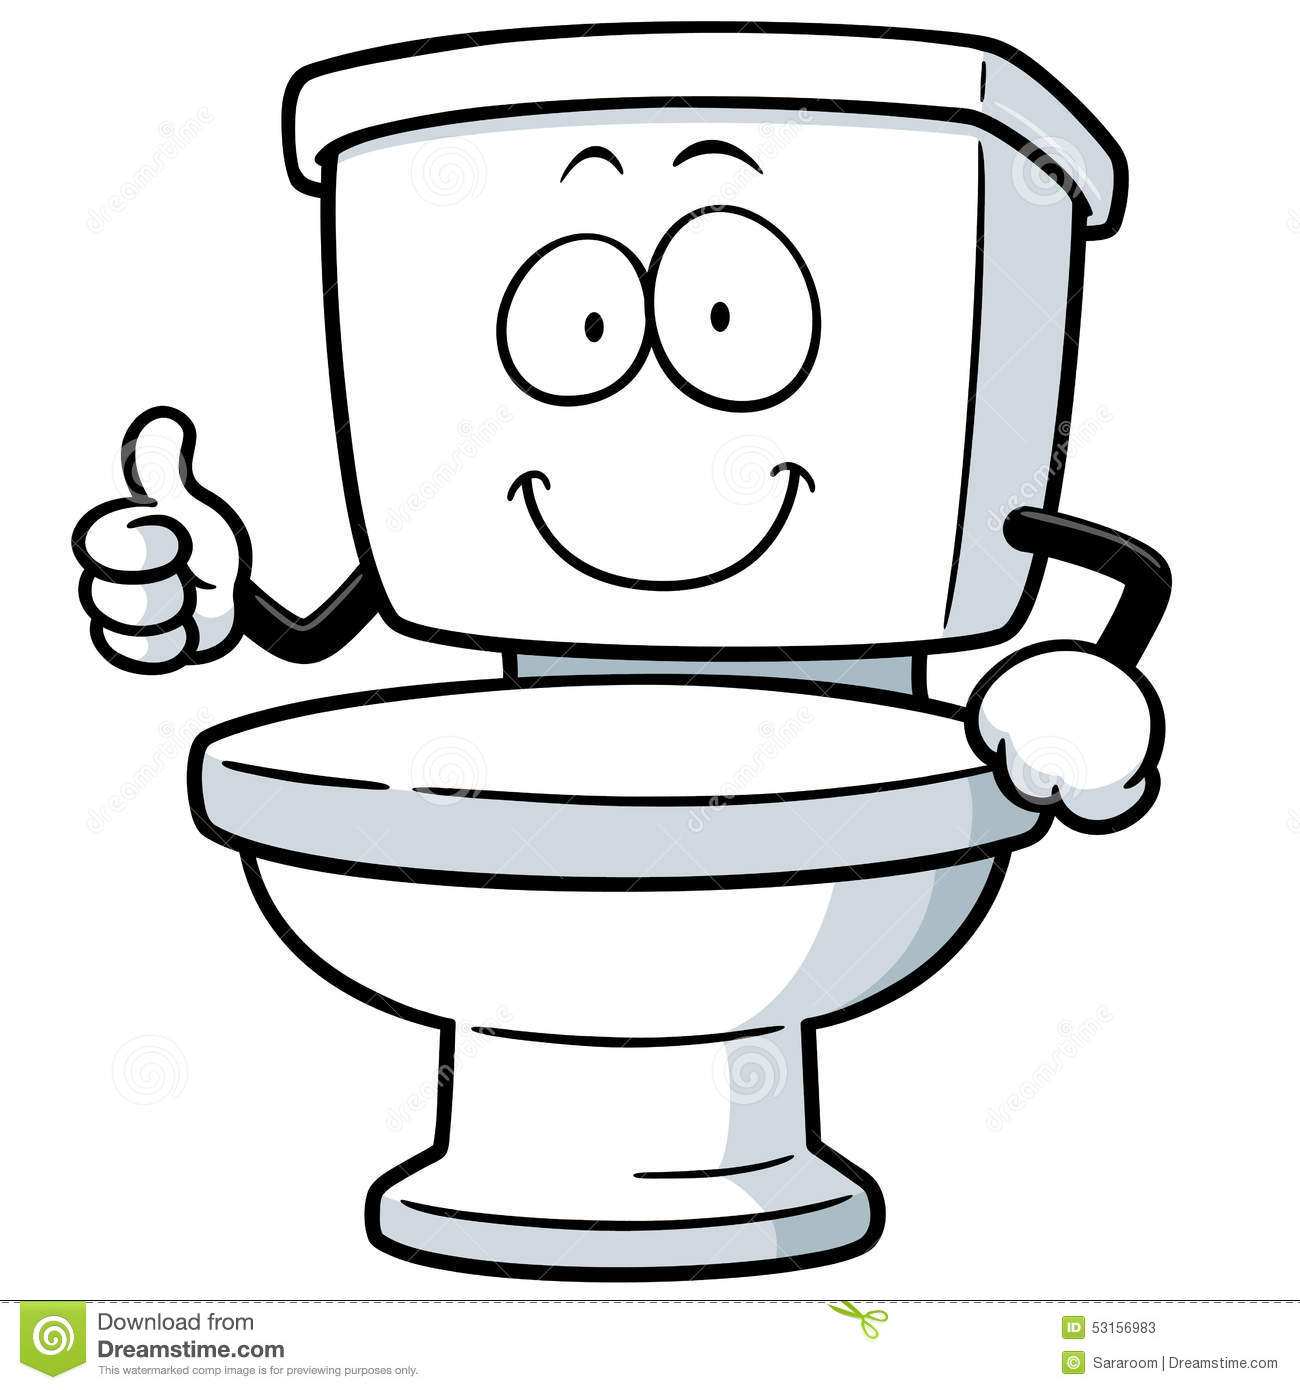 Toilet Stock Vector Illustration Of Holding Isolated